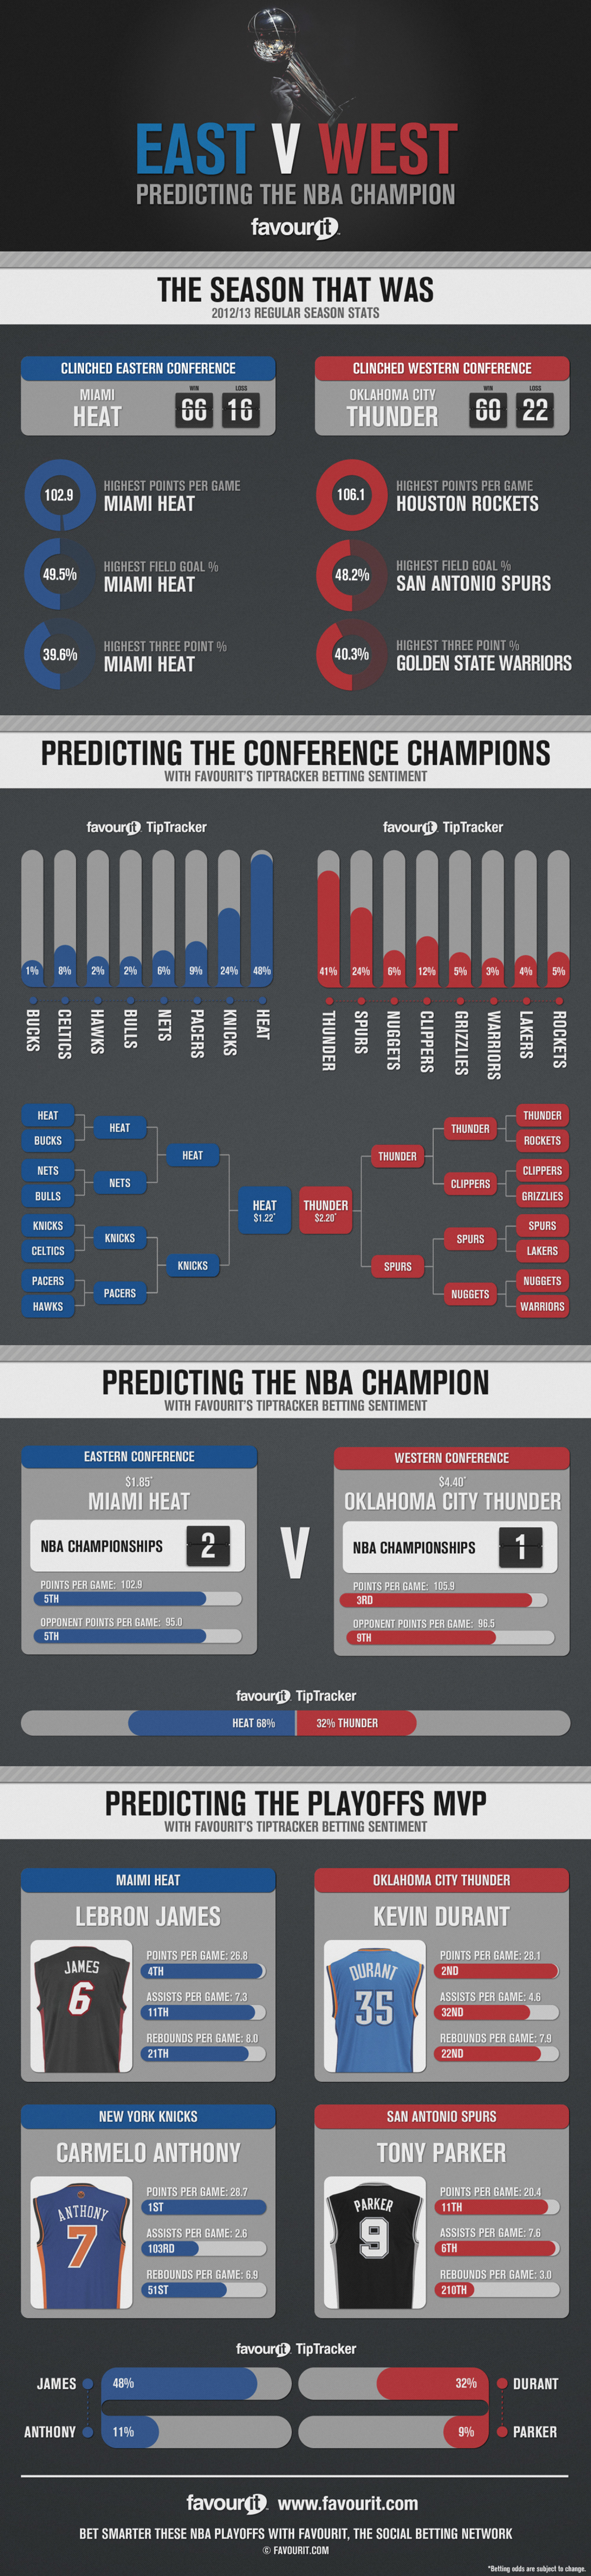 Predicting the NBA Champion Infographic